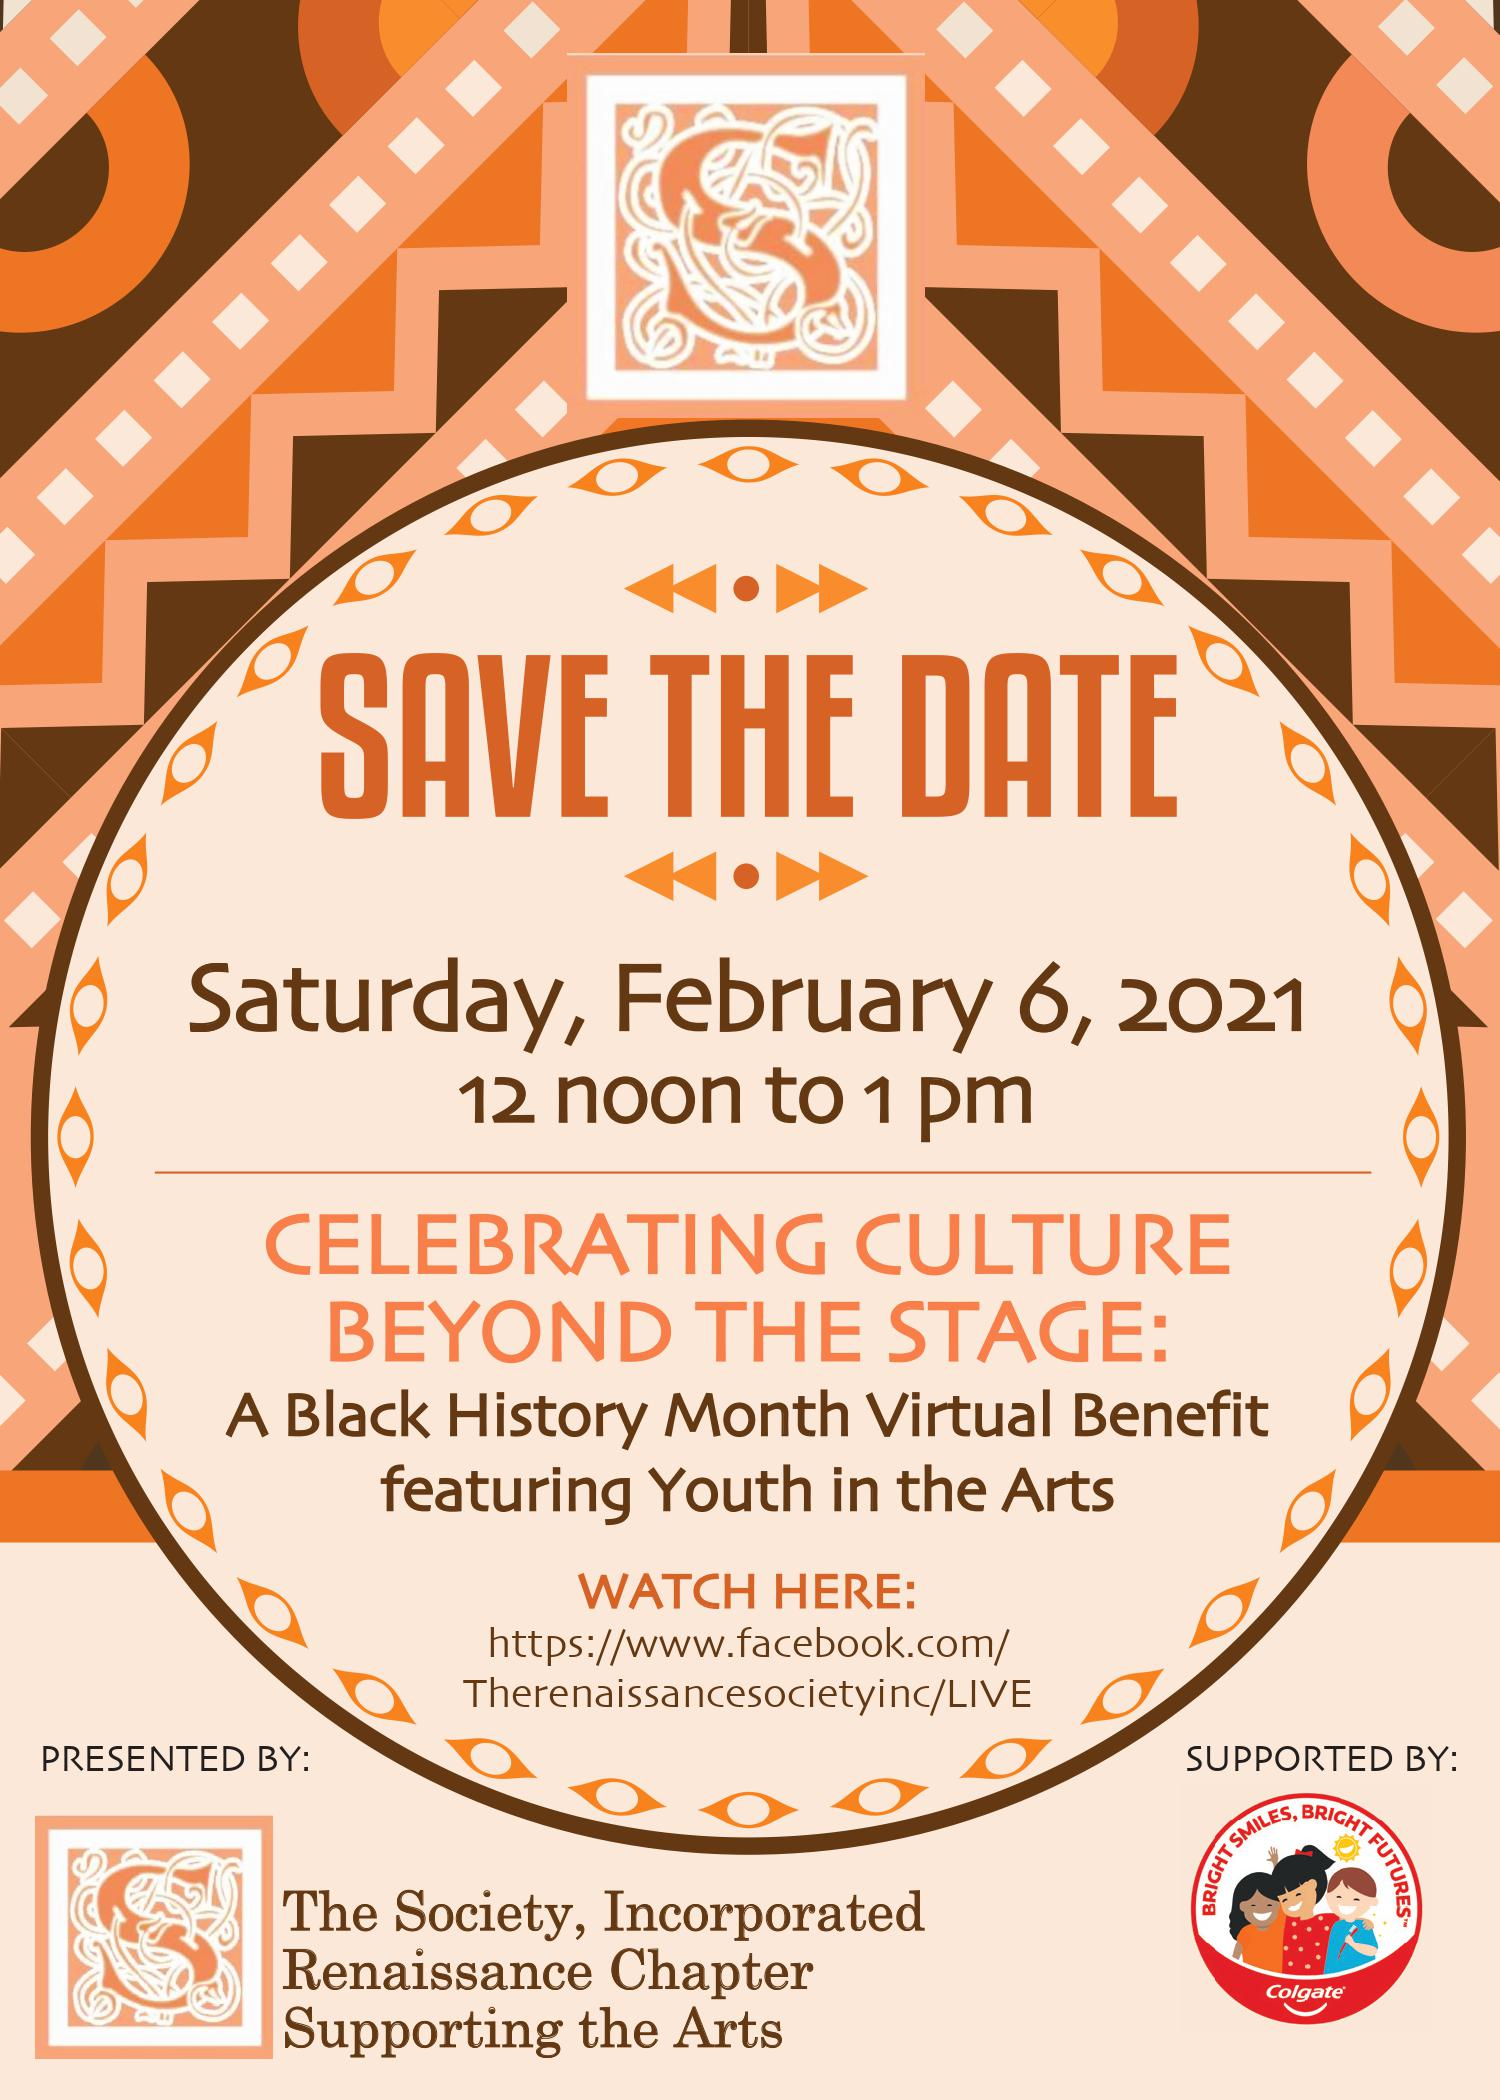 ONLINE Celebrating Culture Beyond The Stage: A Black History Month Virtual Benefit featuring Youth in the Arts at The Society, Incorporated Renaissance Chapter